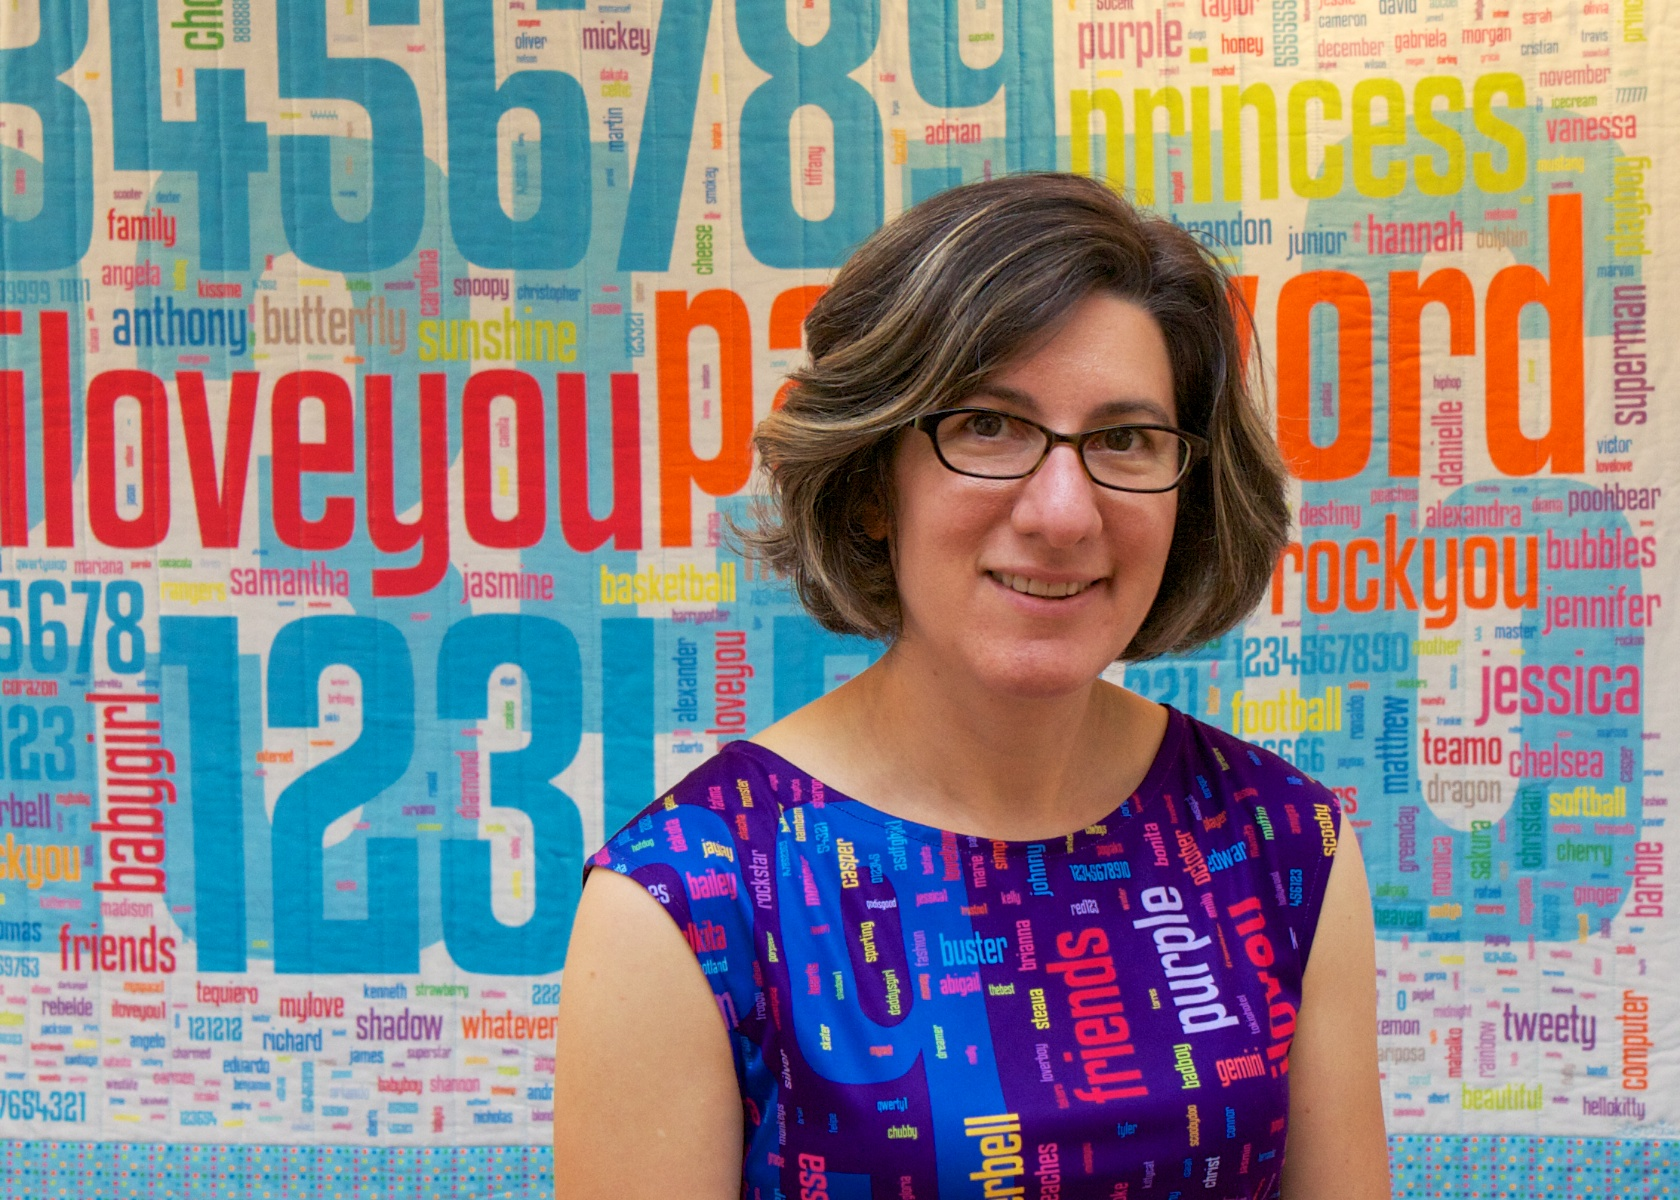 Lorrie Cranor stands in front of her quilt that depicts the frequencies of passwords in their respective sizes. (credit: Lorrie Cranor)